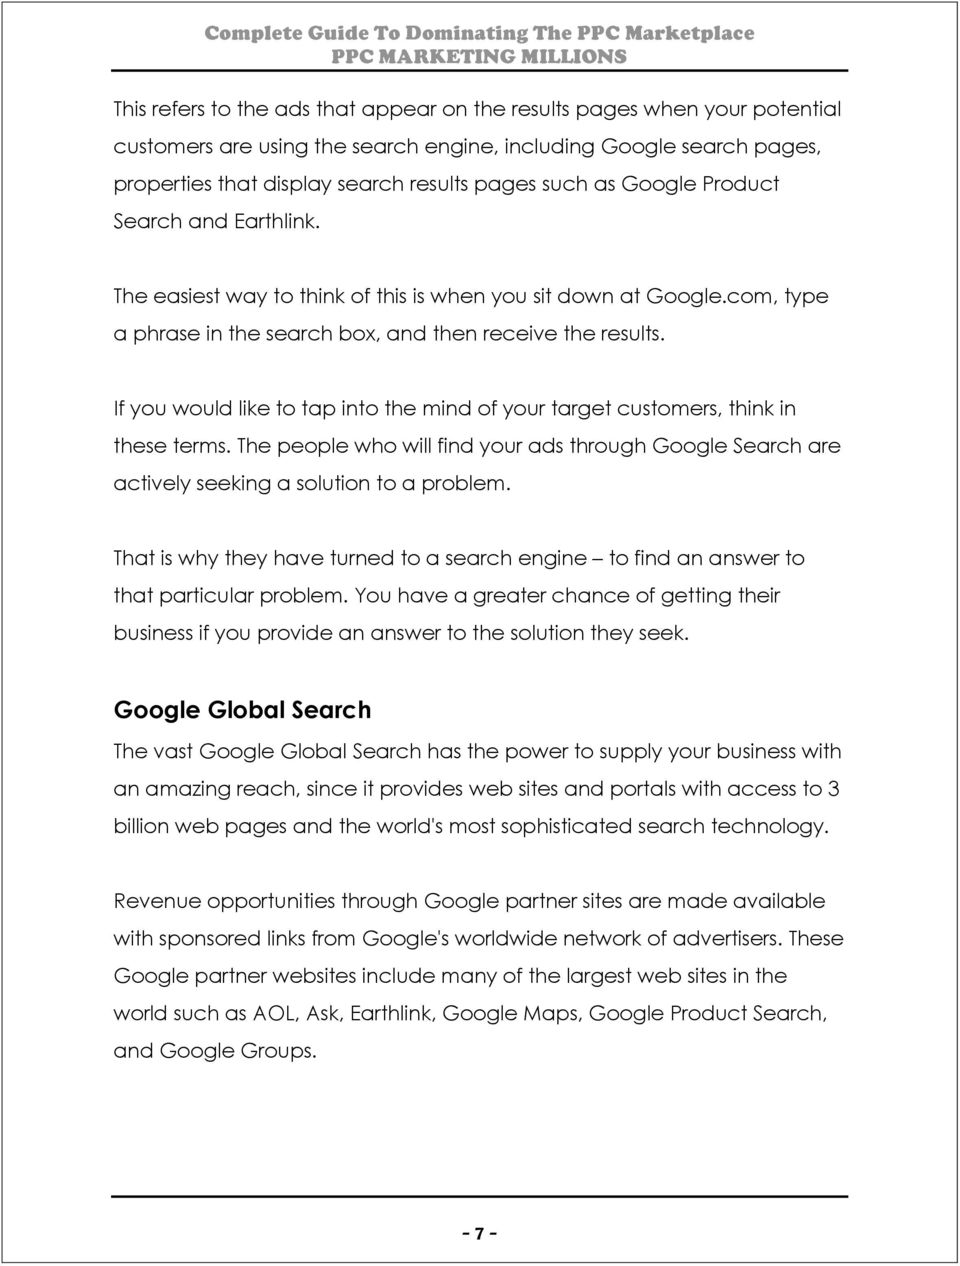 If you would like to tap into the mind of your target customers, think in these terms. The people who will find your ads through Google Search are actively seeking a solution to a problem.